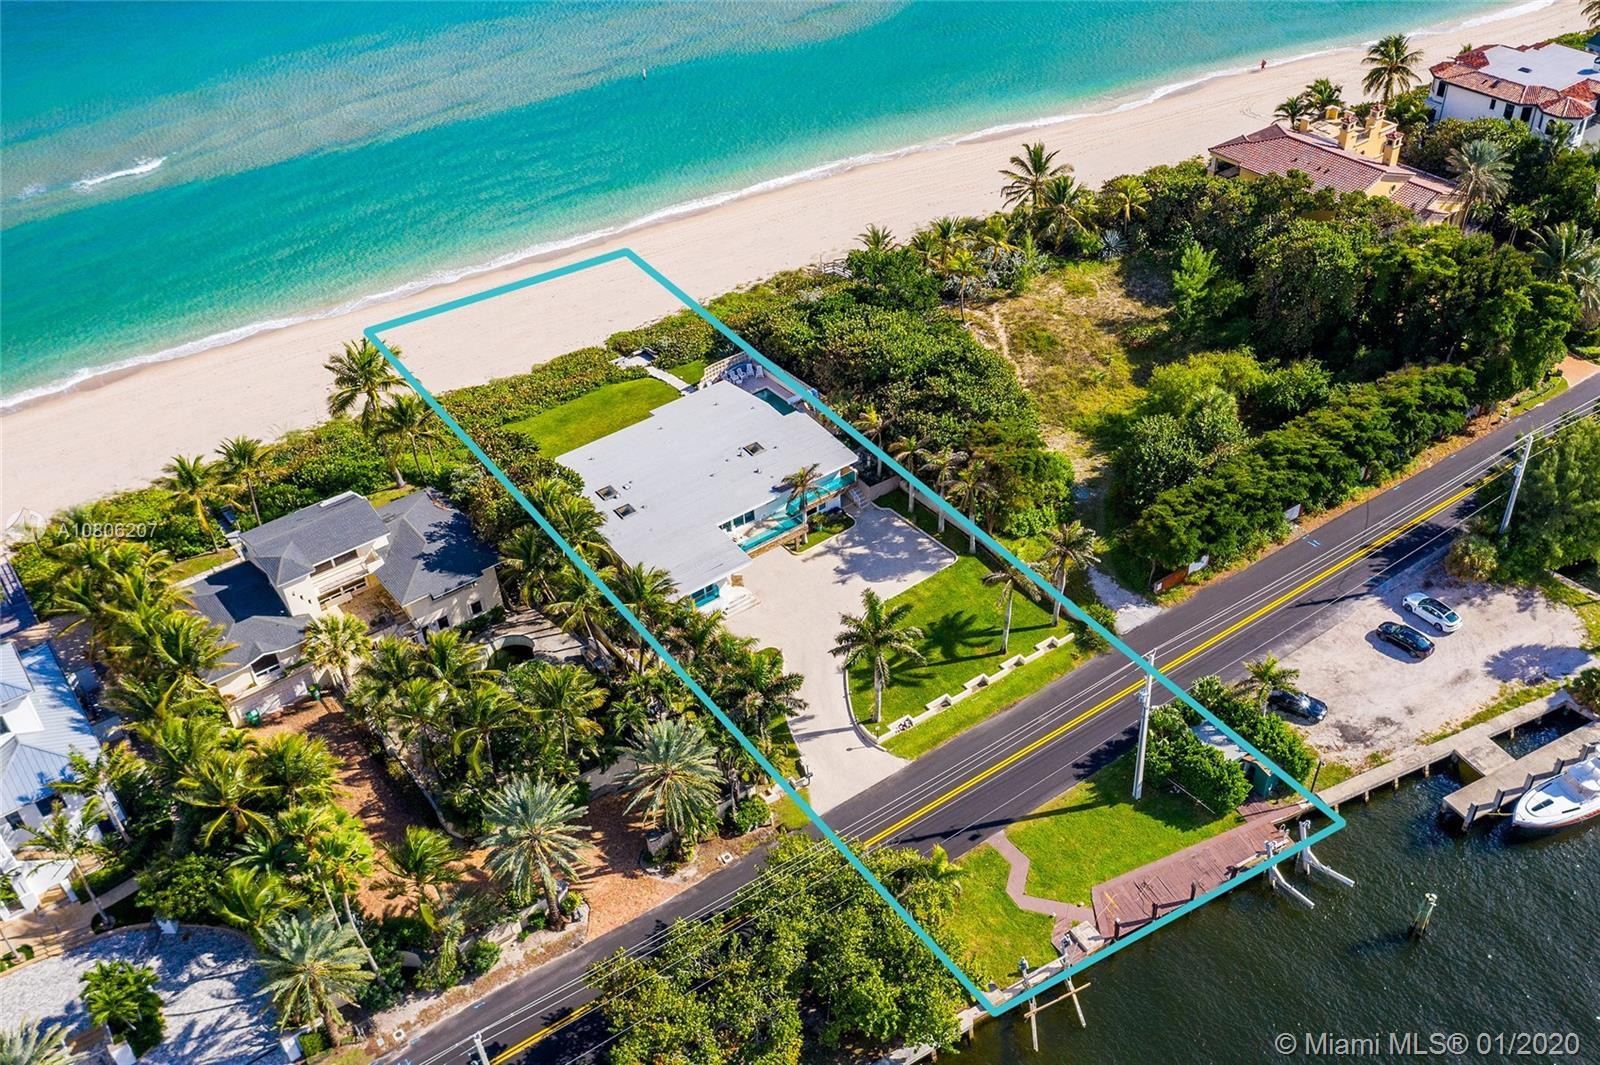 """Watch the sunrise & sunset on this one-of-a-kind Ocean-to-Intracoastal property located on """"Hillsbor"""